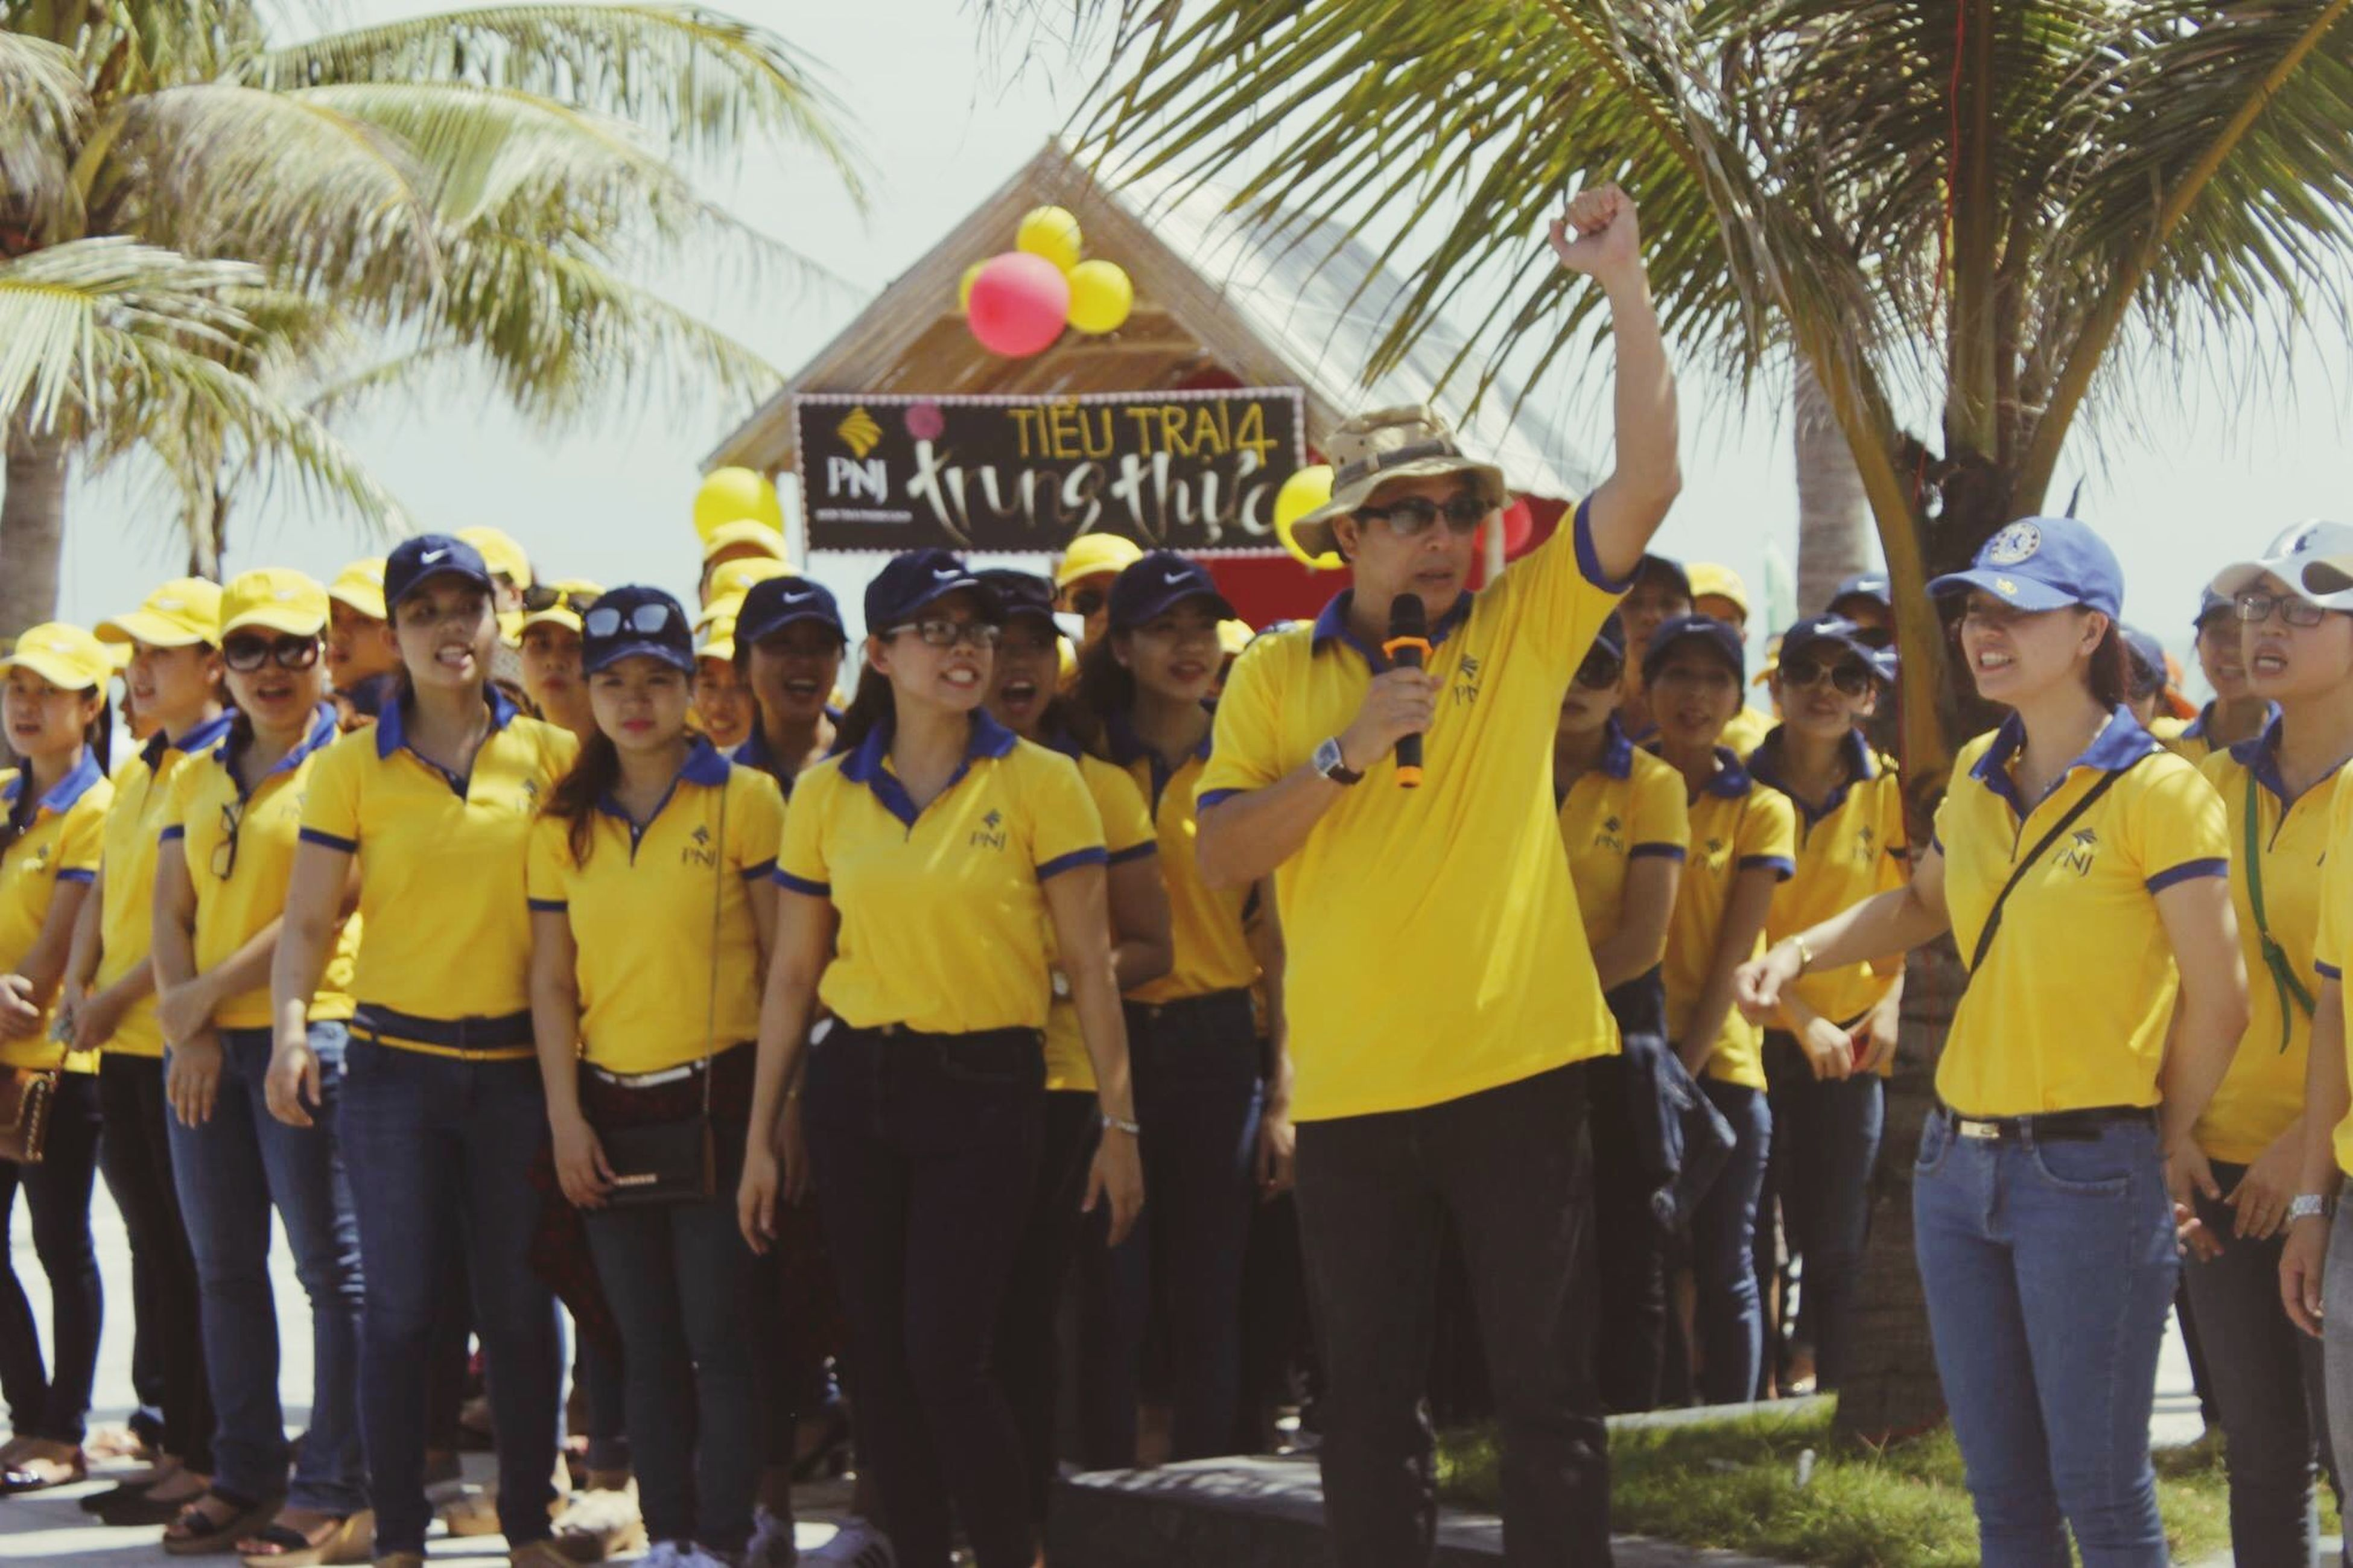 men, large group of people, person, lifestyles, leisure activity, walking, text, standing, crowd, rear view, street, casual clothing, day, outdoors, togetherness, yellow, mixed age range, celebration, western script